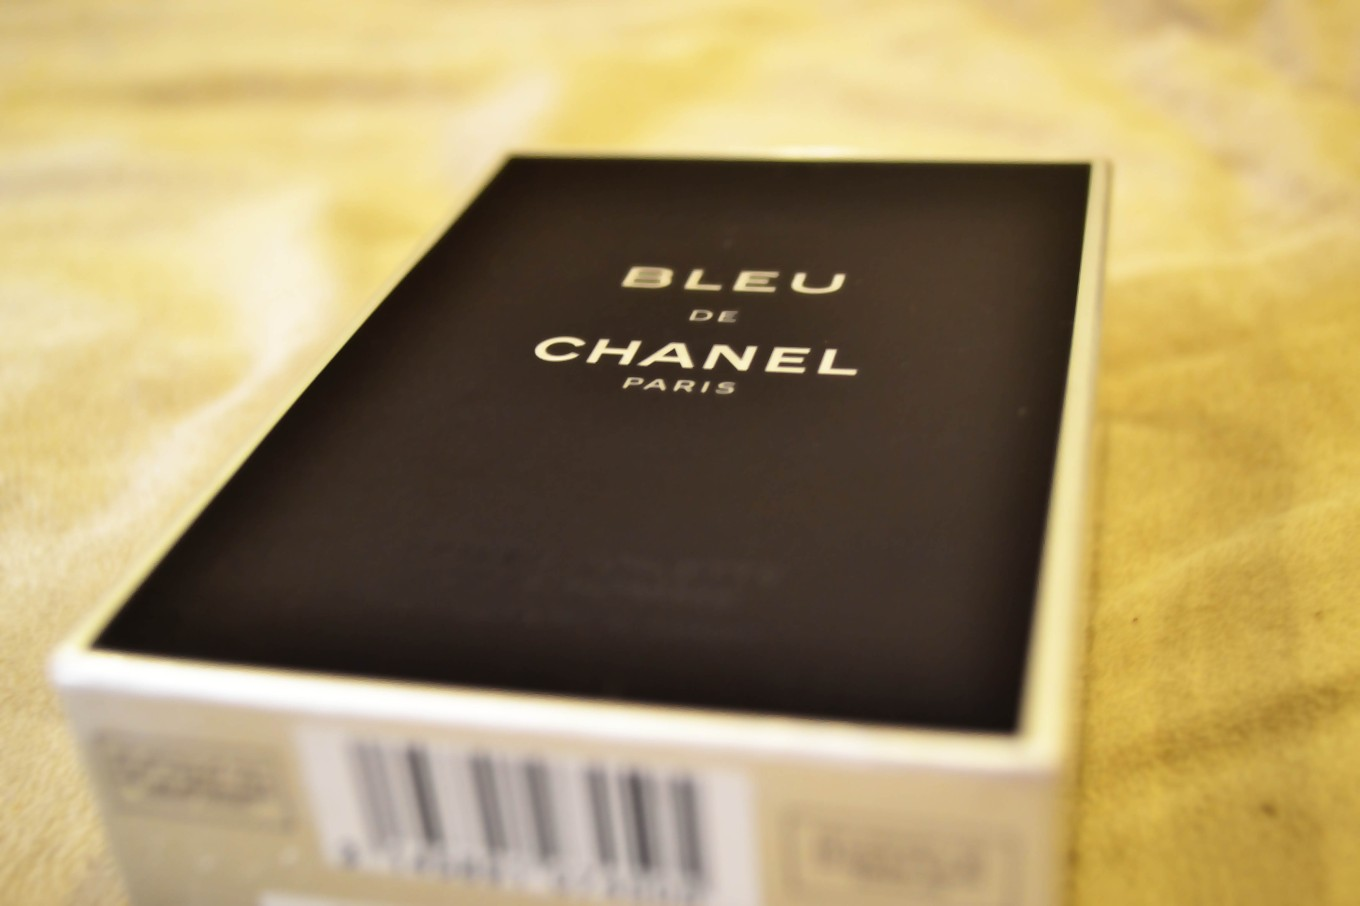 Bleu De Chanel Perfume Edt Review Logically Approved